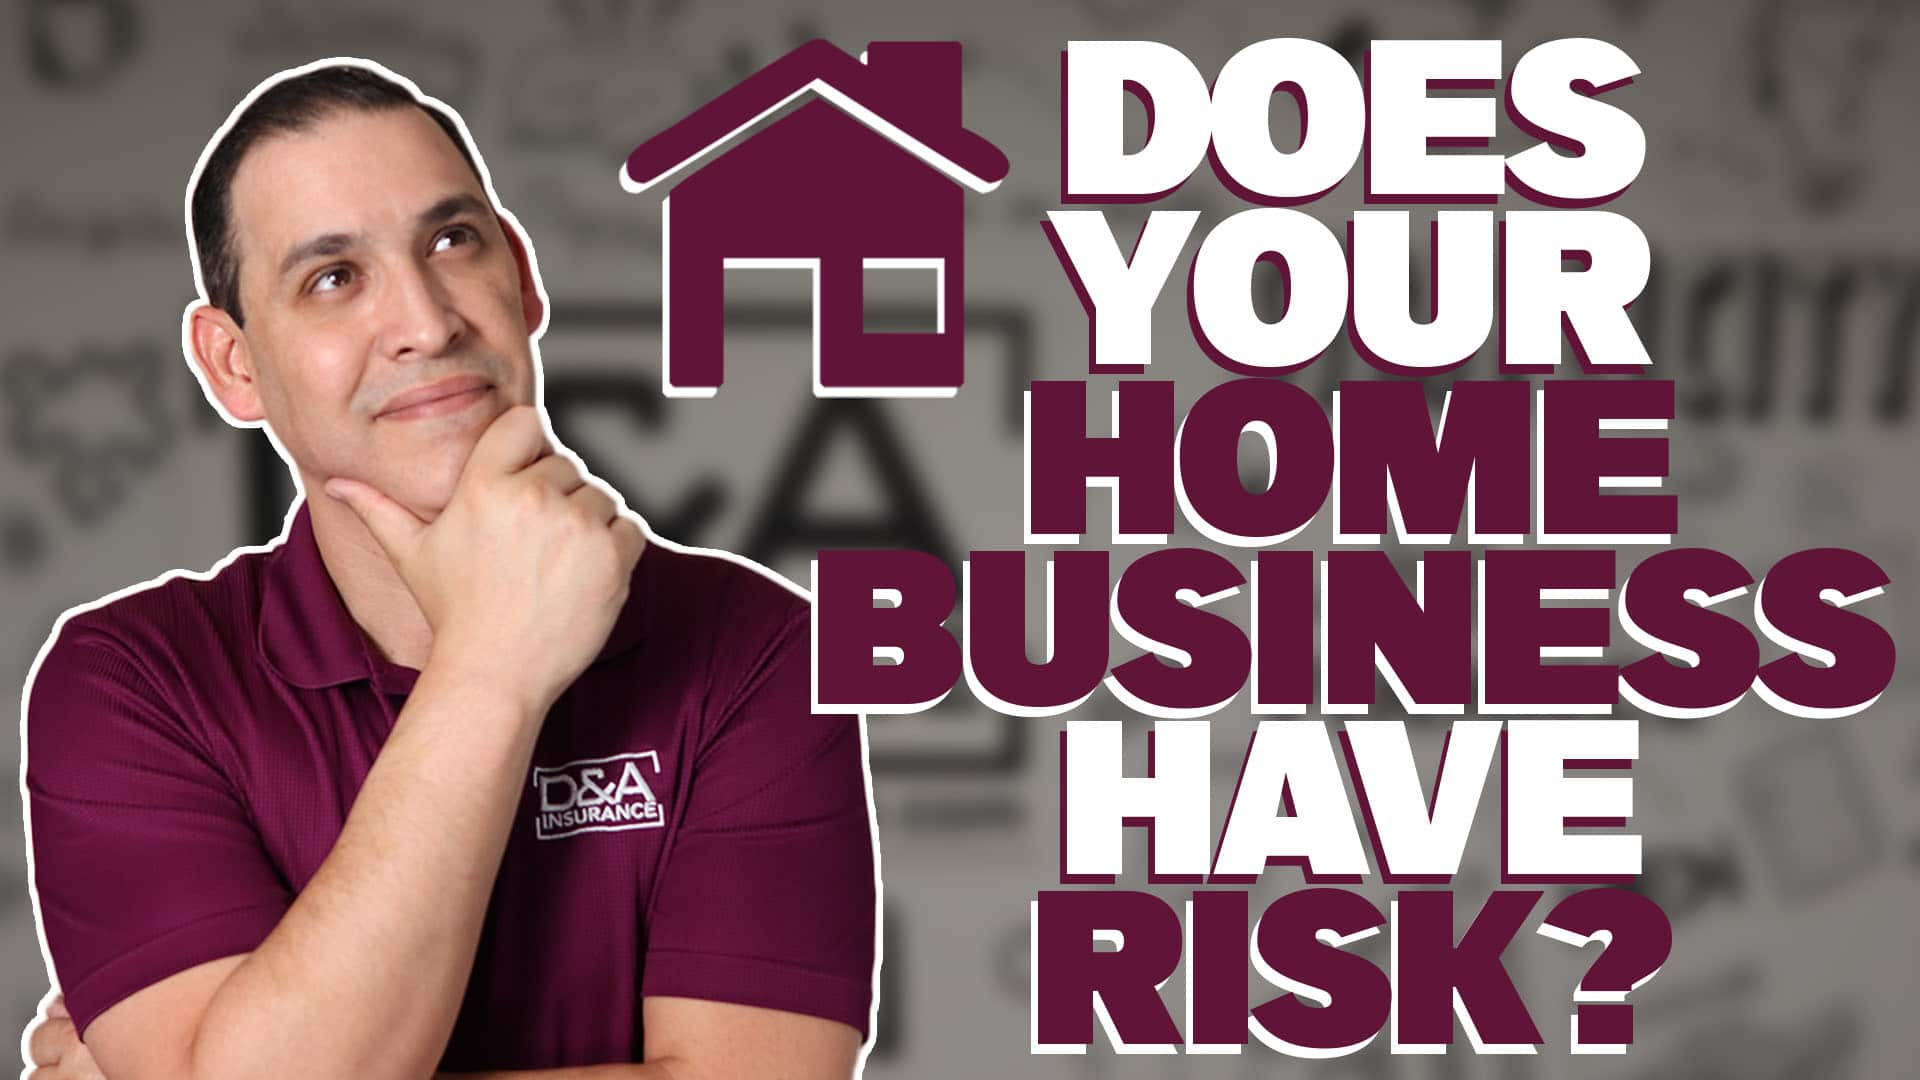 Does Your Home Business Have Risk?